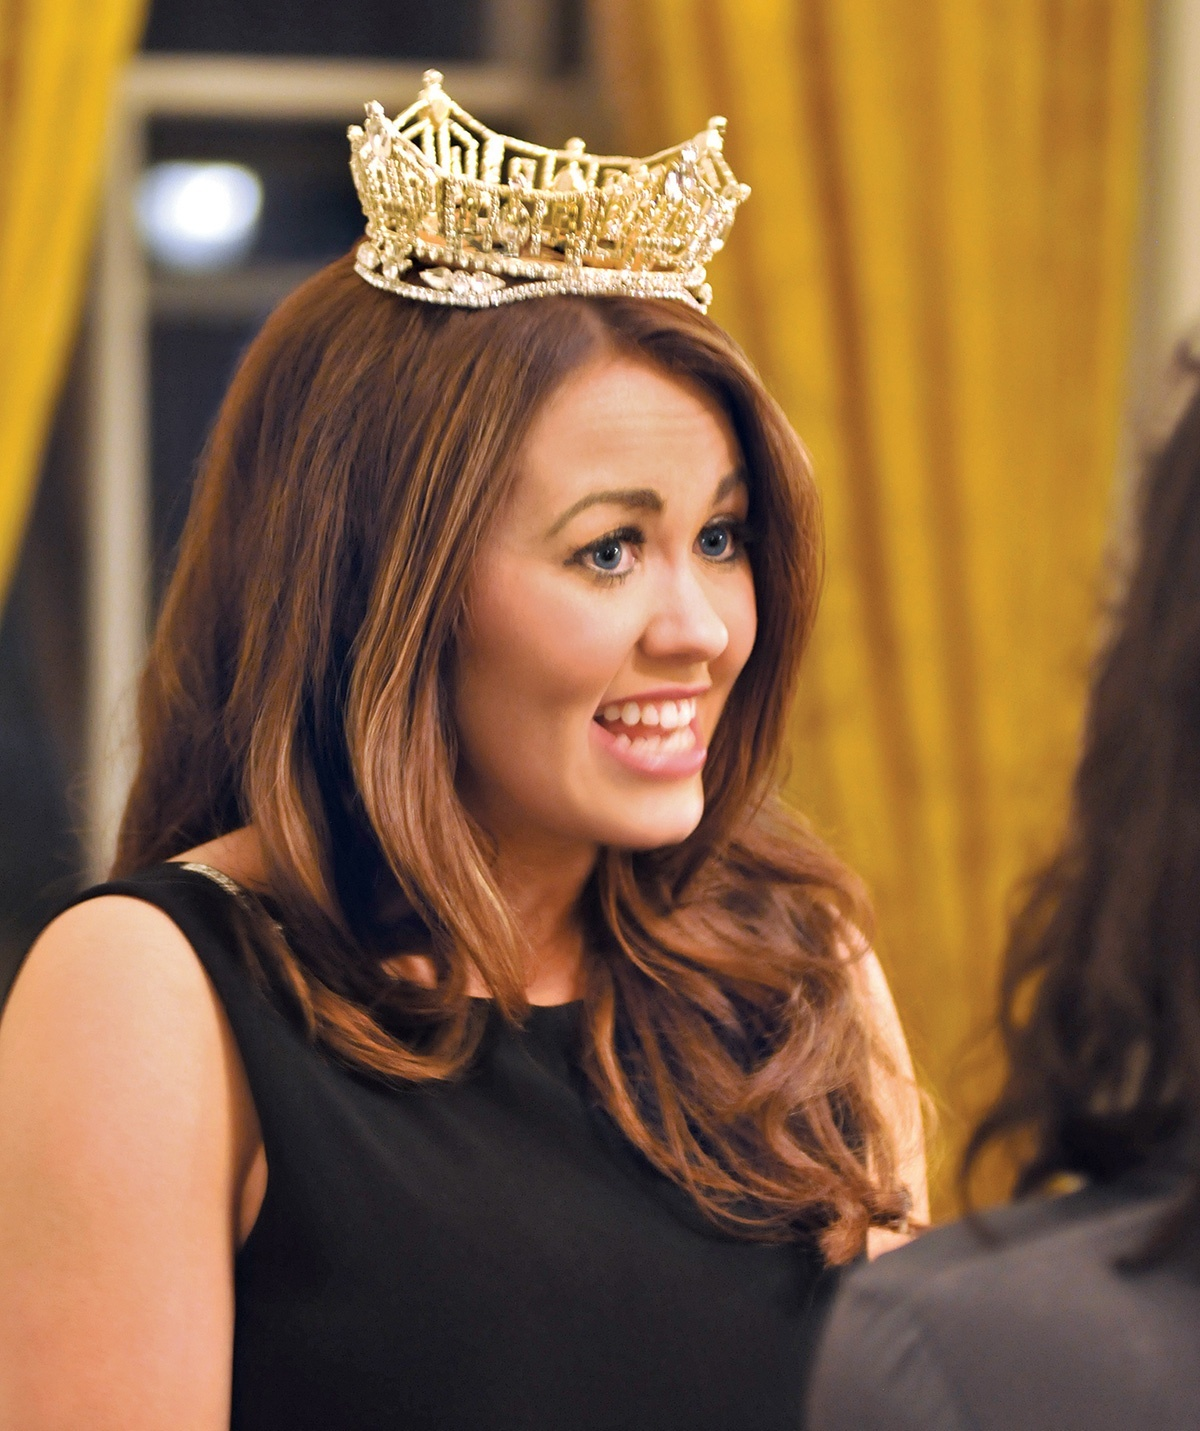 Photograph of Cara Mund wearing a crown.